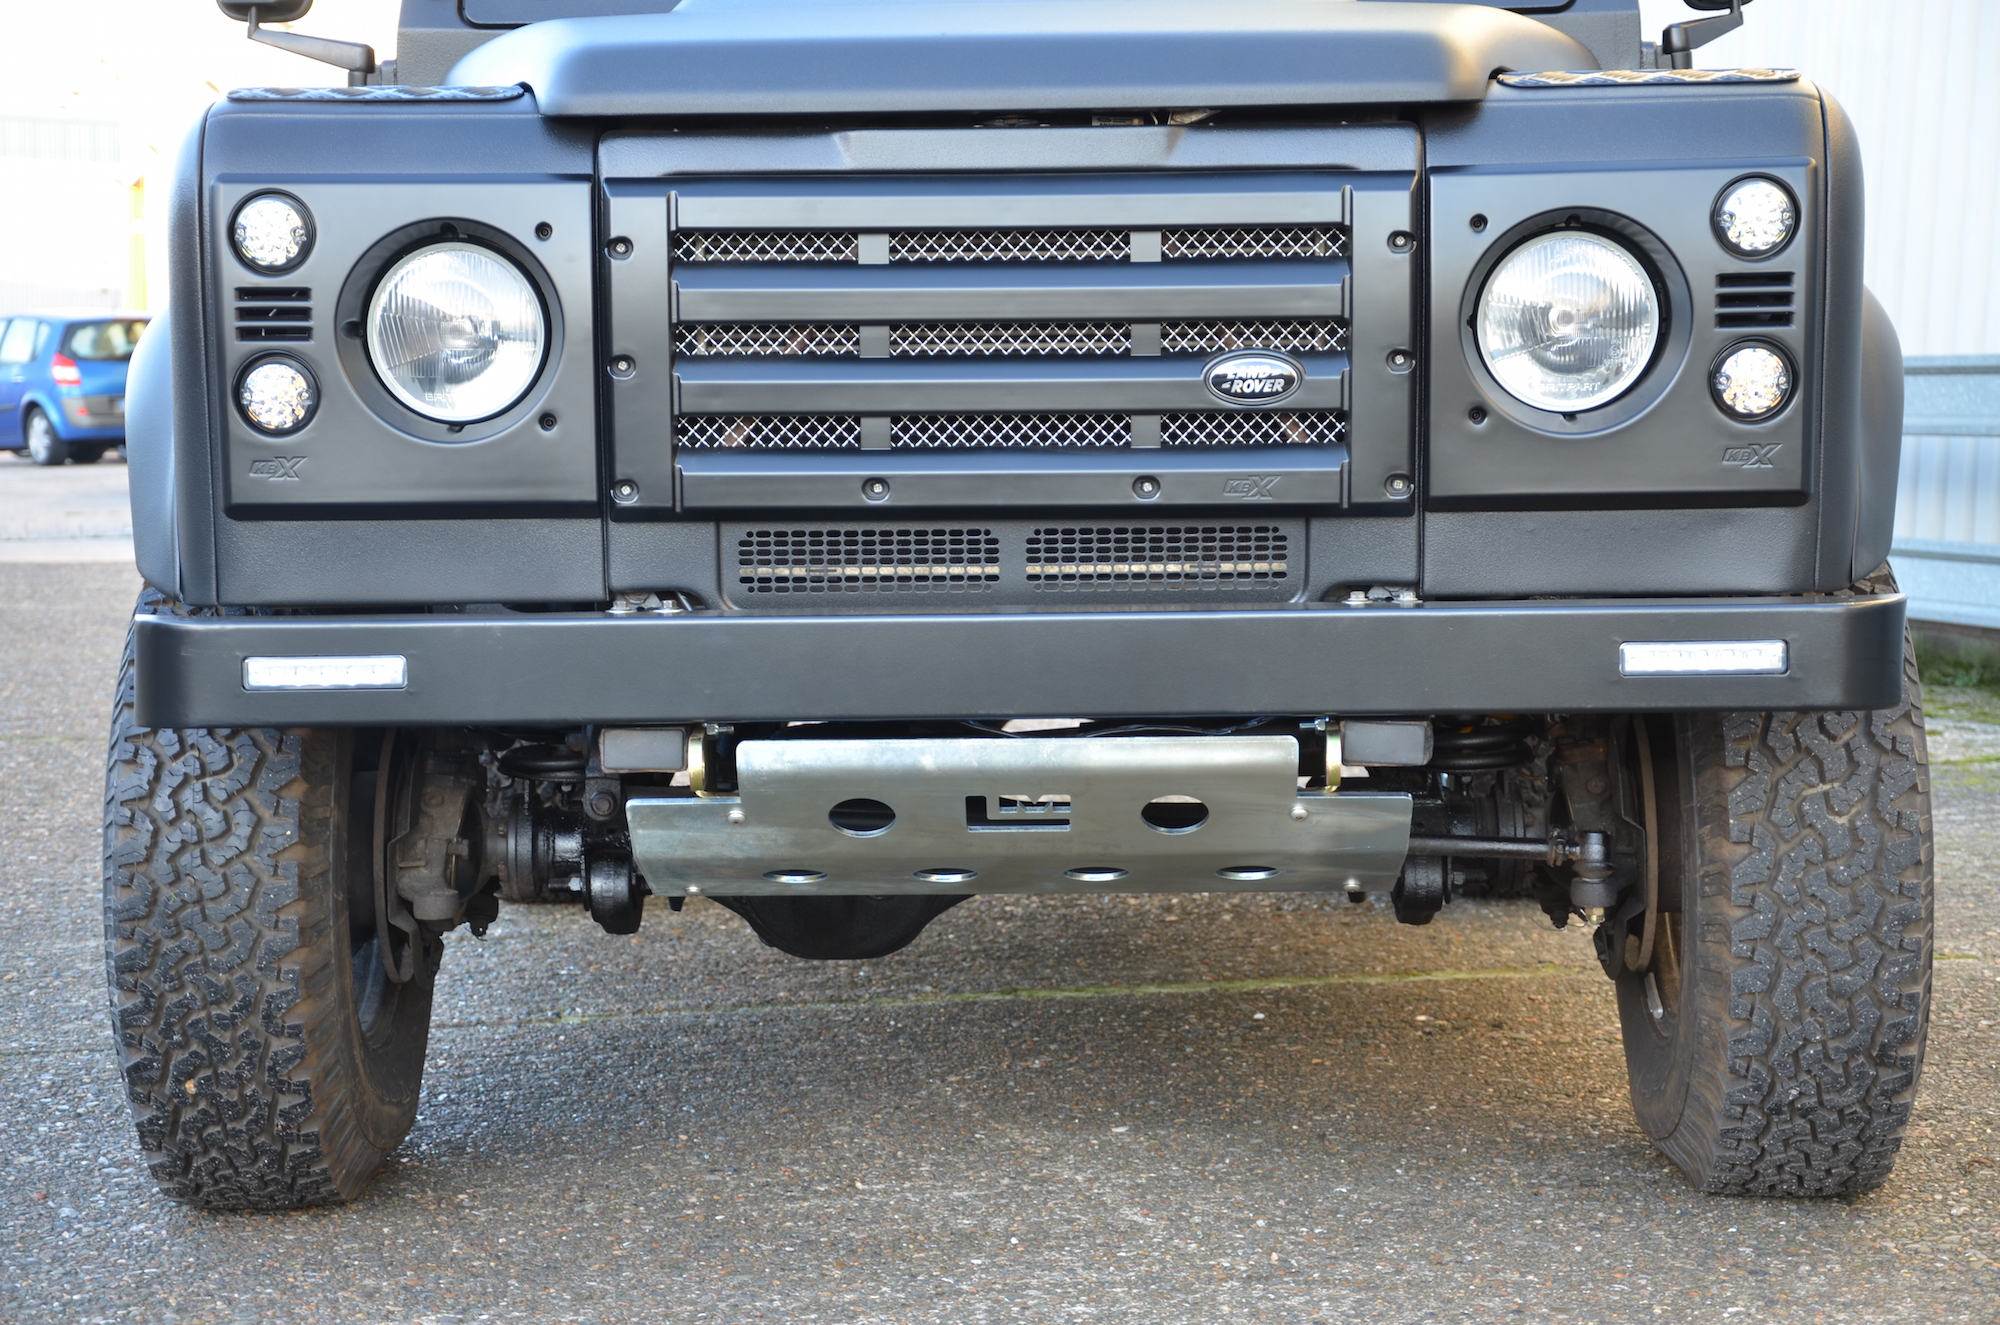 KBX FRONT GRILL KIT AND AIR INTAKES